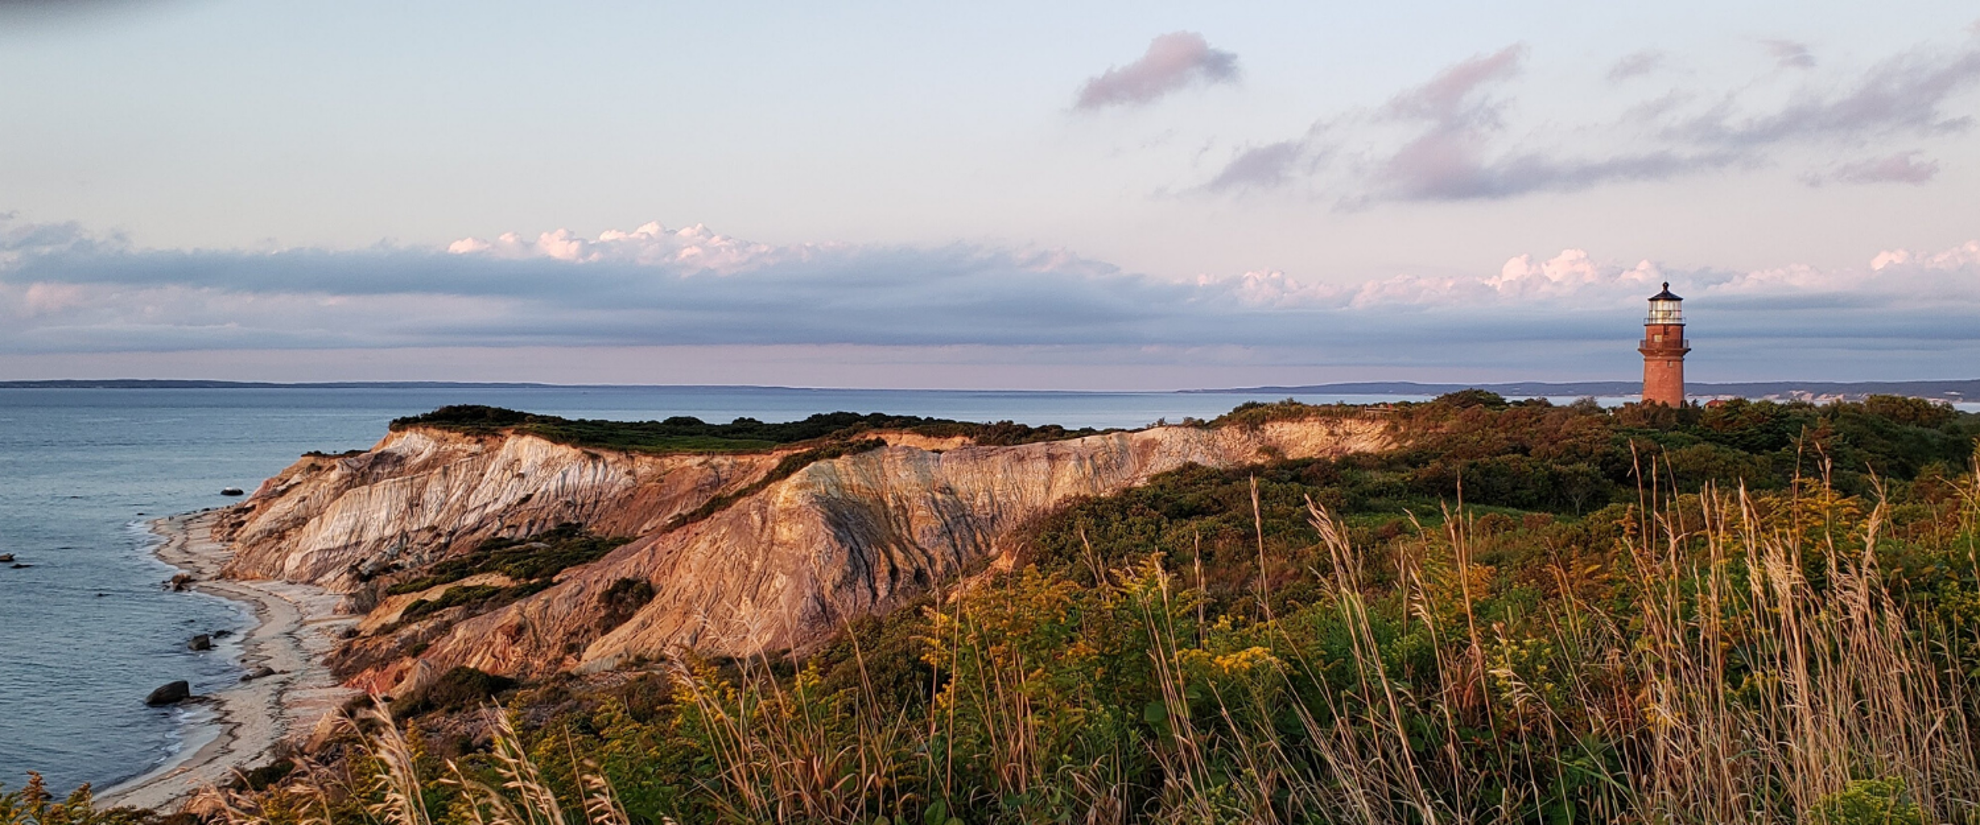 Classic lighthouse image. the sun is getting close to setting, but there is still some blue in the sky. there's a lovely hint of peach pastels on the horizon, craggy cliffs in the foreground